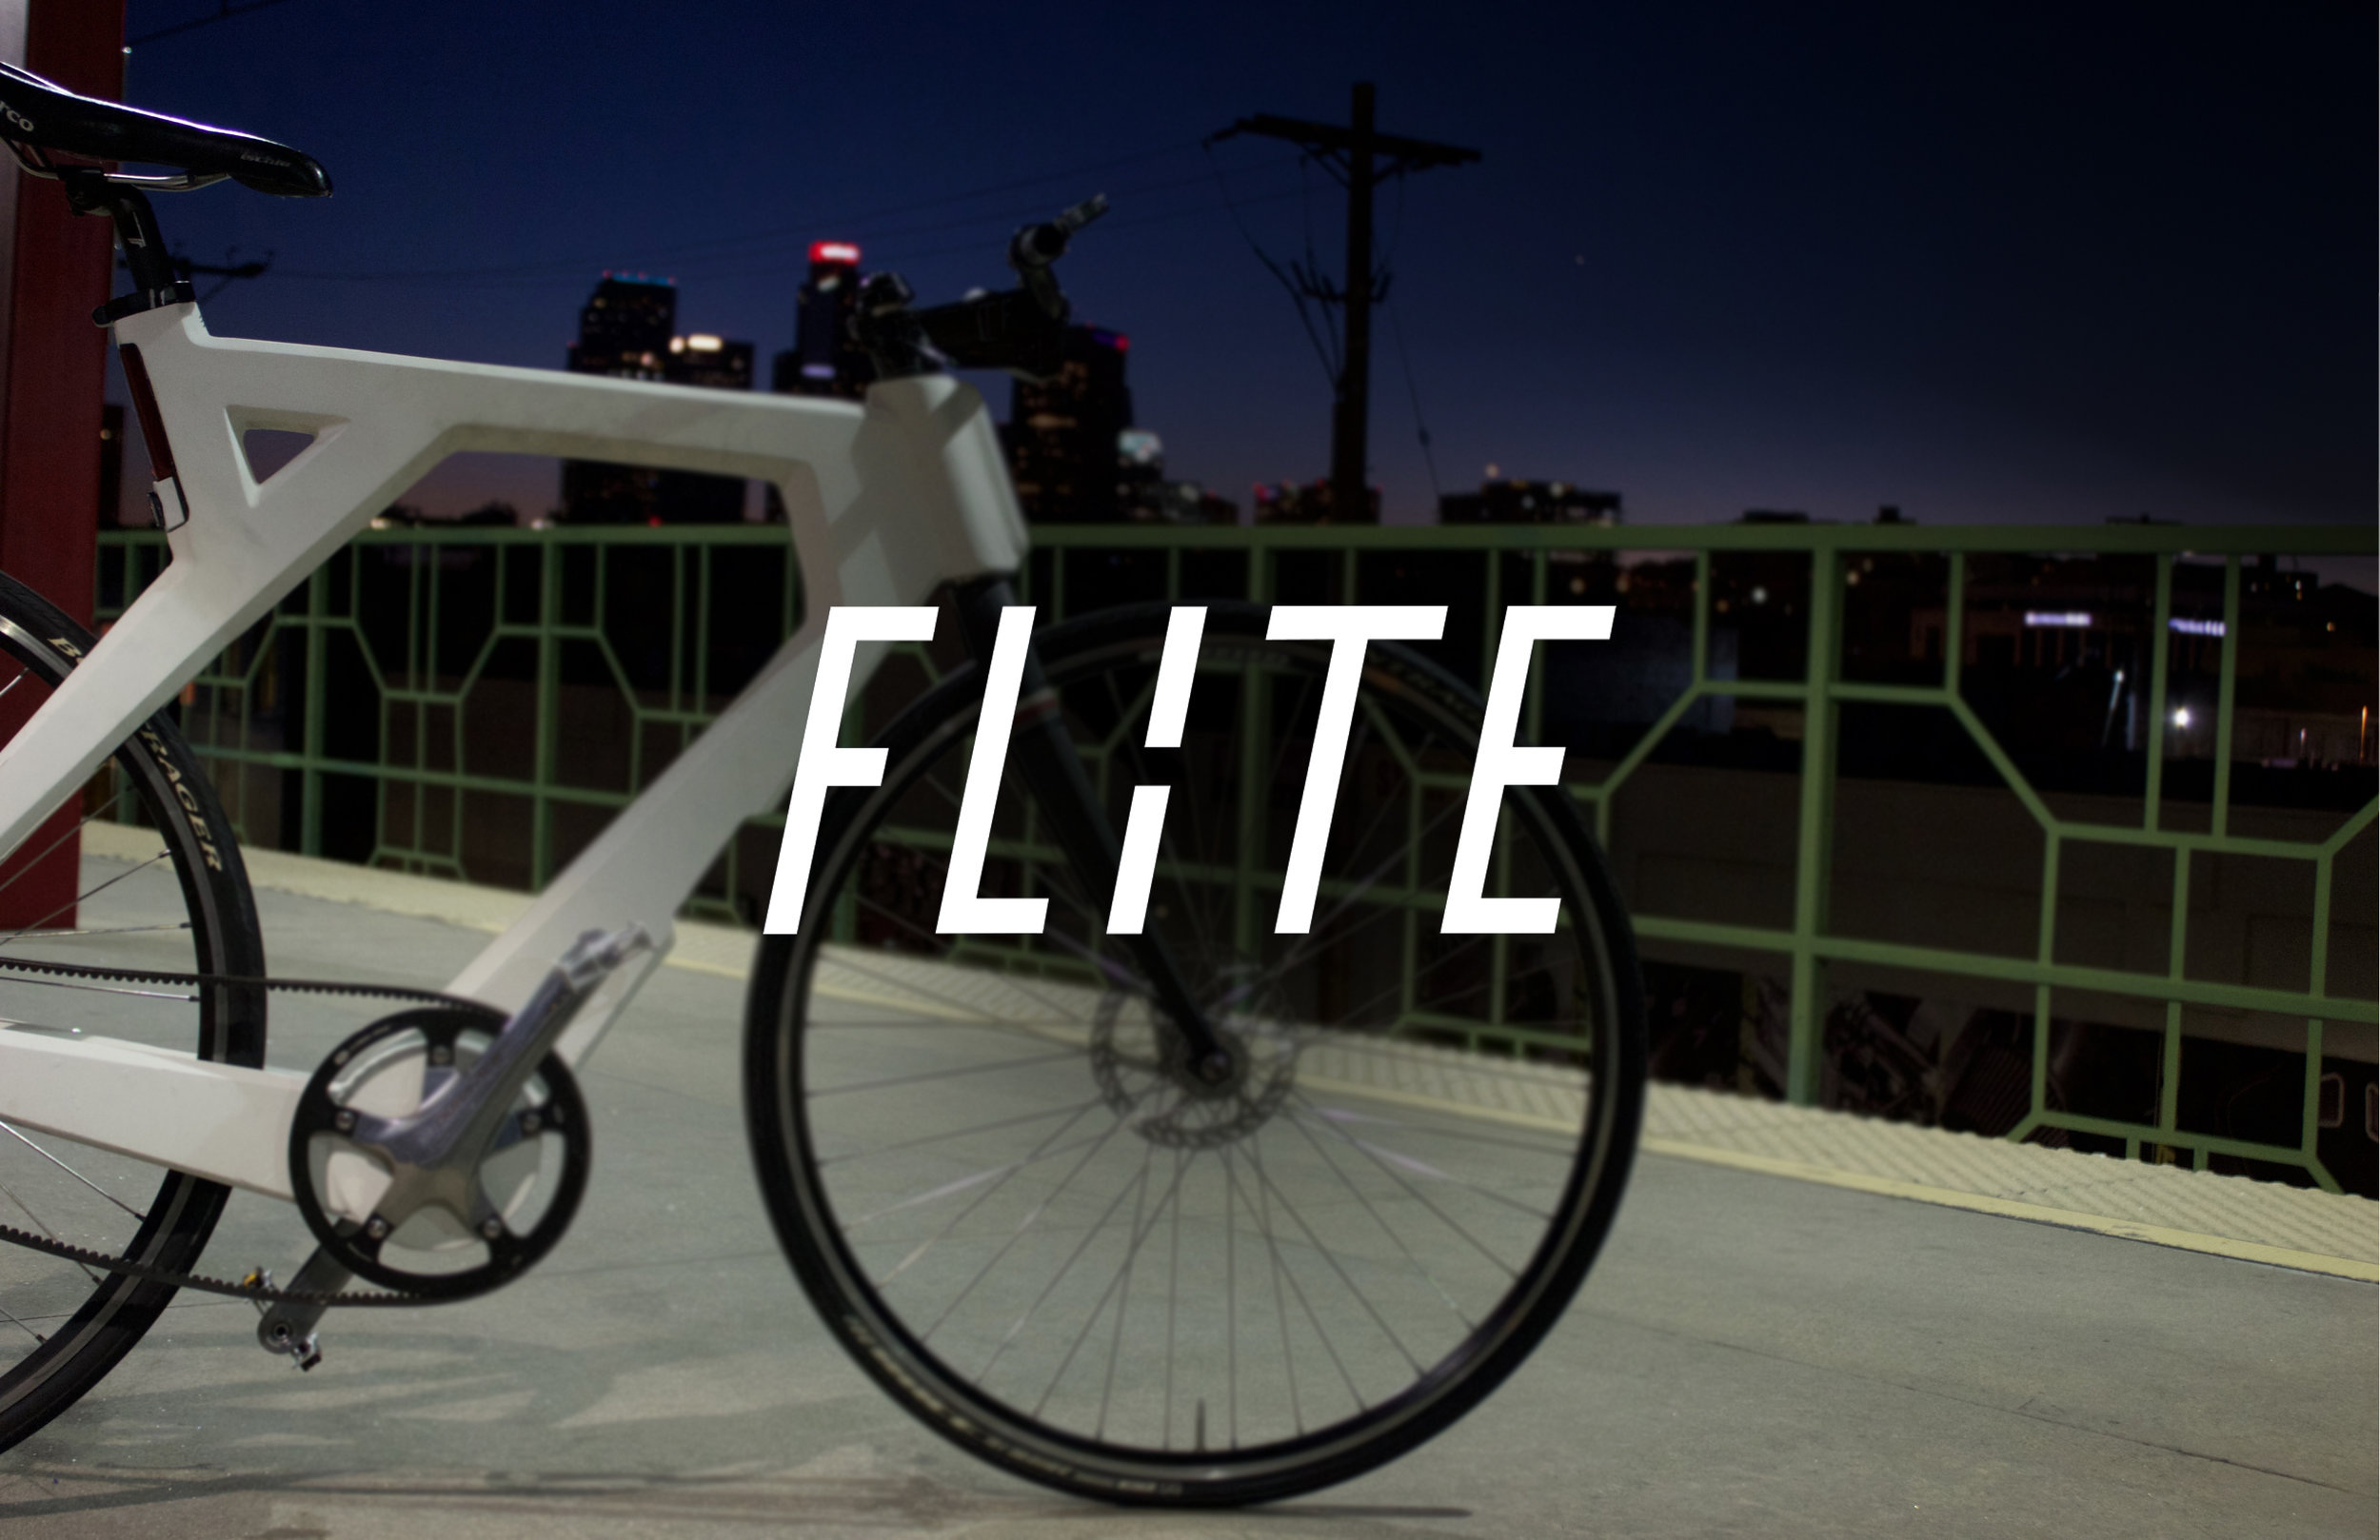 Flite page picture.jpg